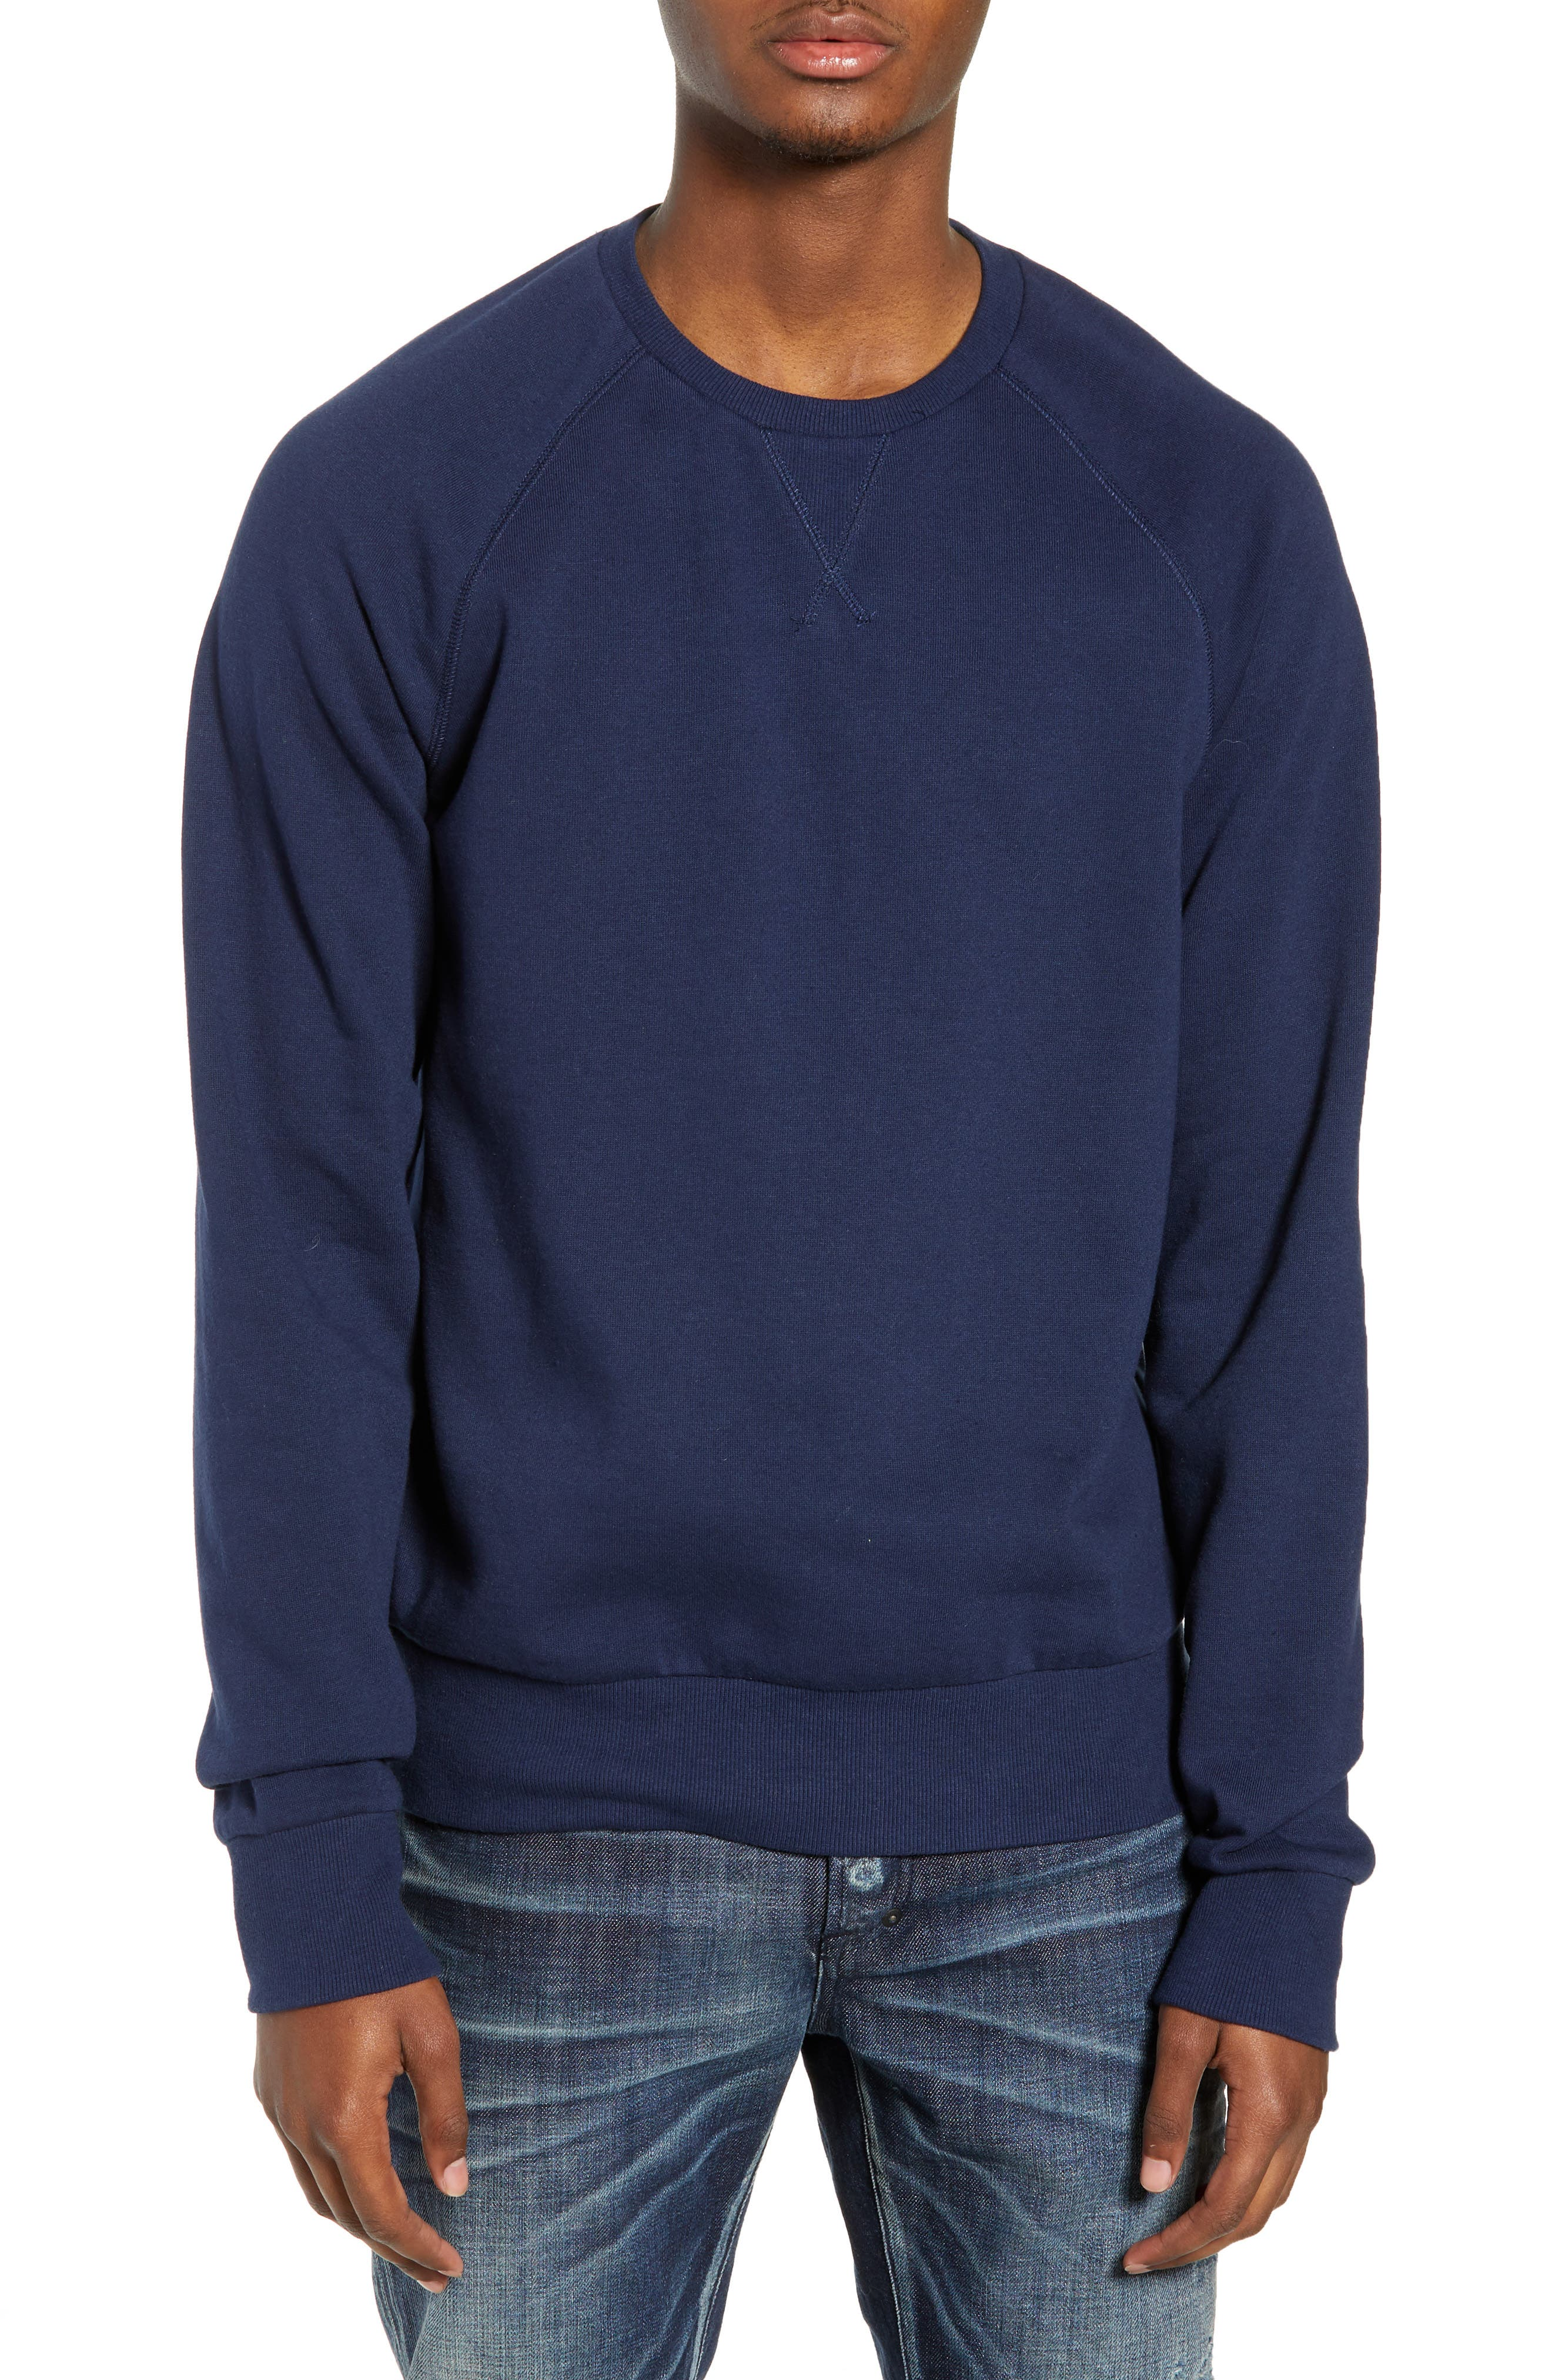 THE RAIL Crewneck Sweatshirt, Main, color, 410